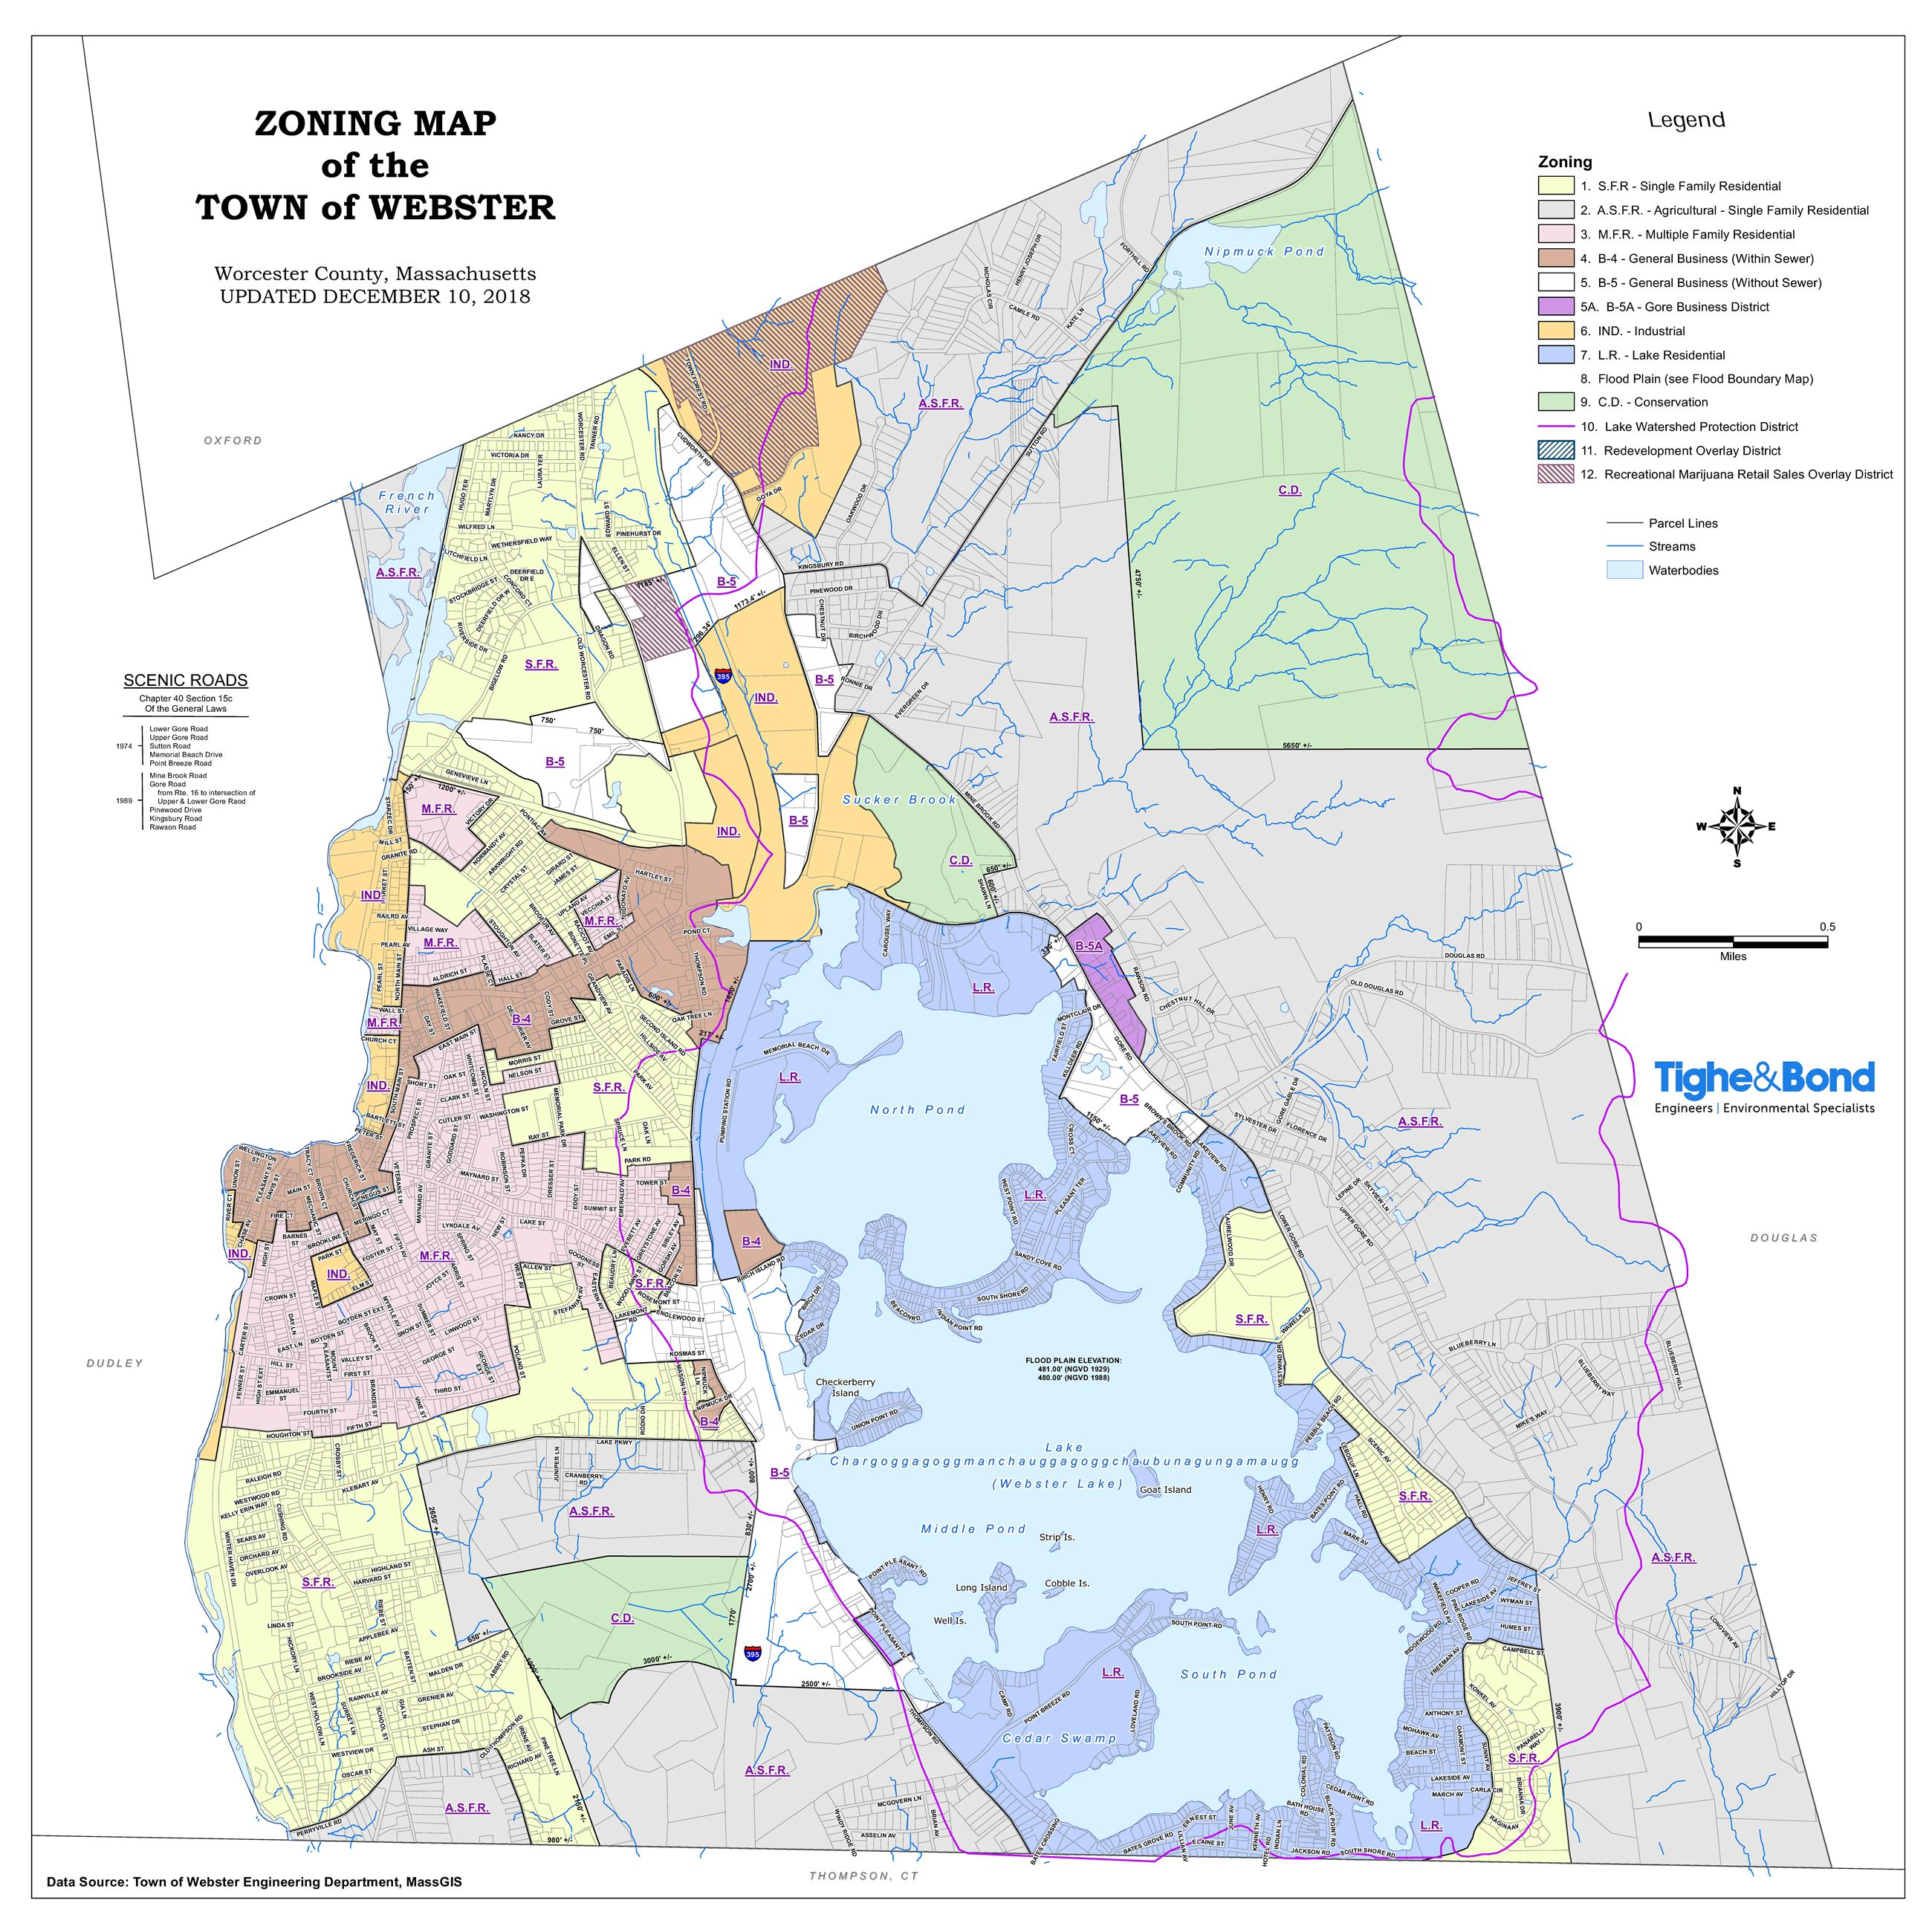 Town of Webster Zoning Map, December 10, 2018